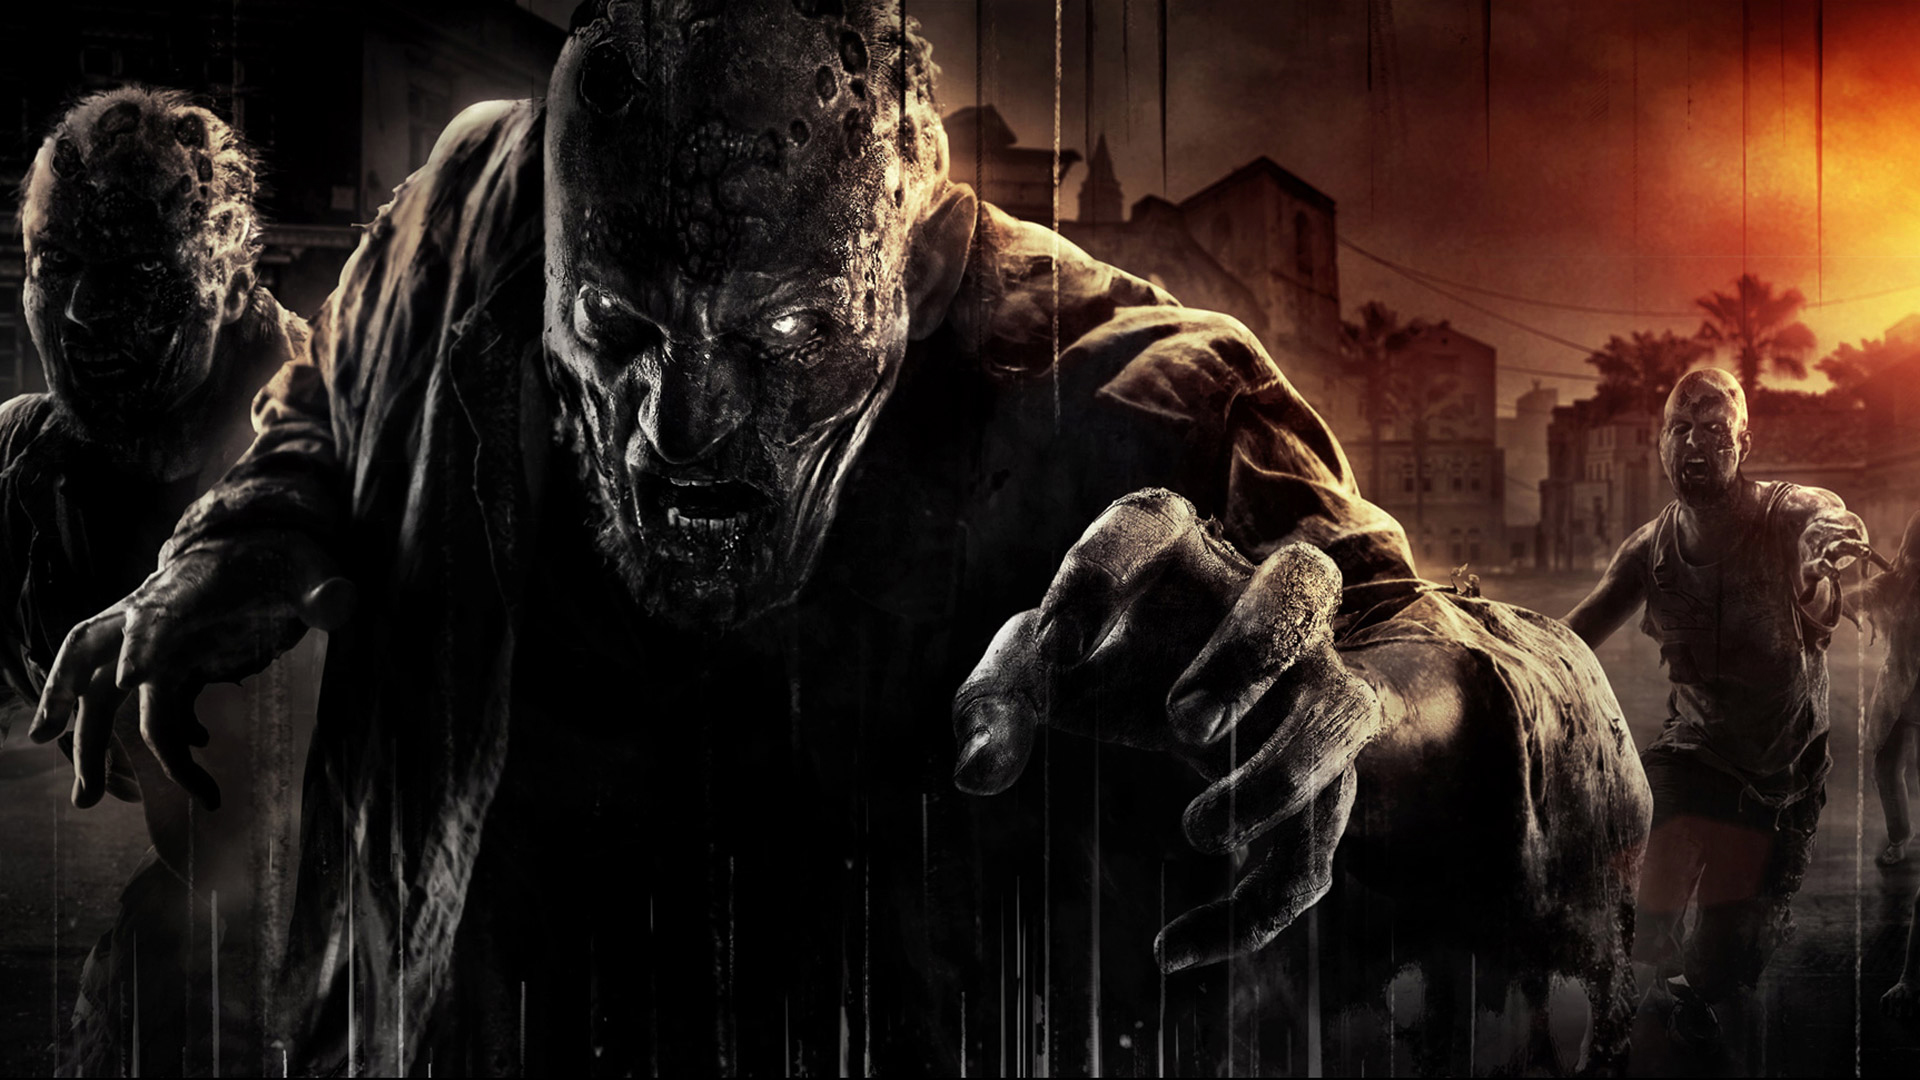 Dying Light Wallpaper 1080p Dying light game hd zombies 1920x1080